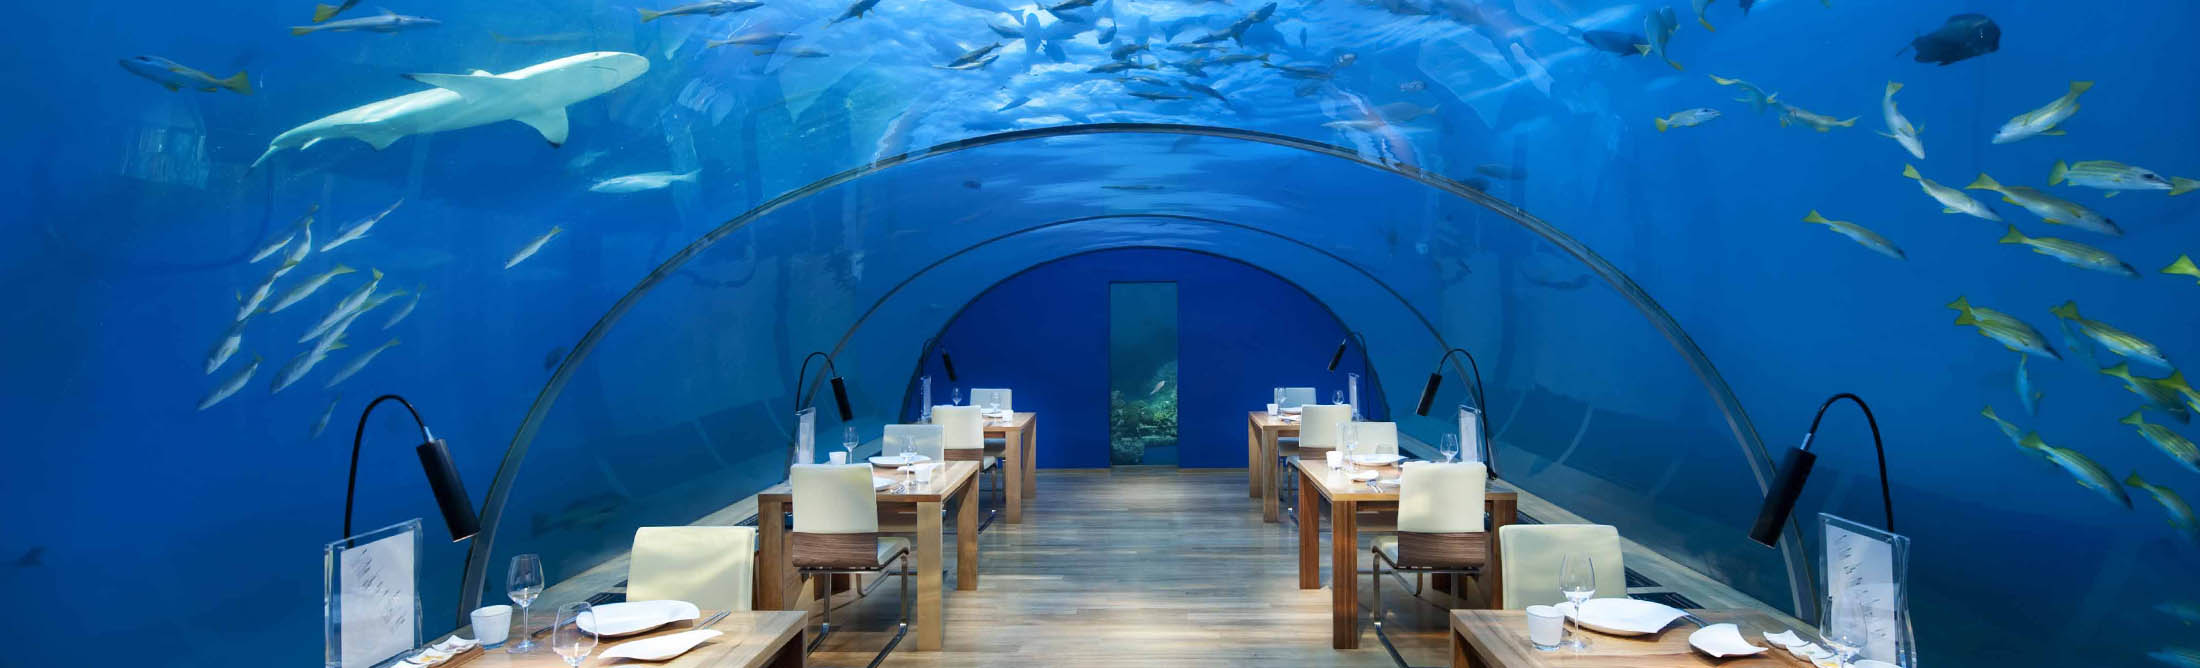 nine of the most extreme dining experiences money can buy bloomberg